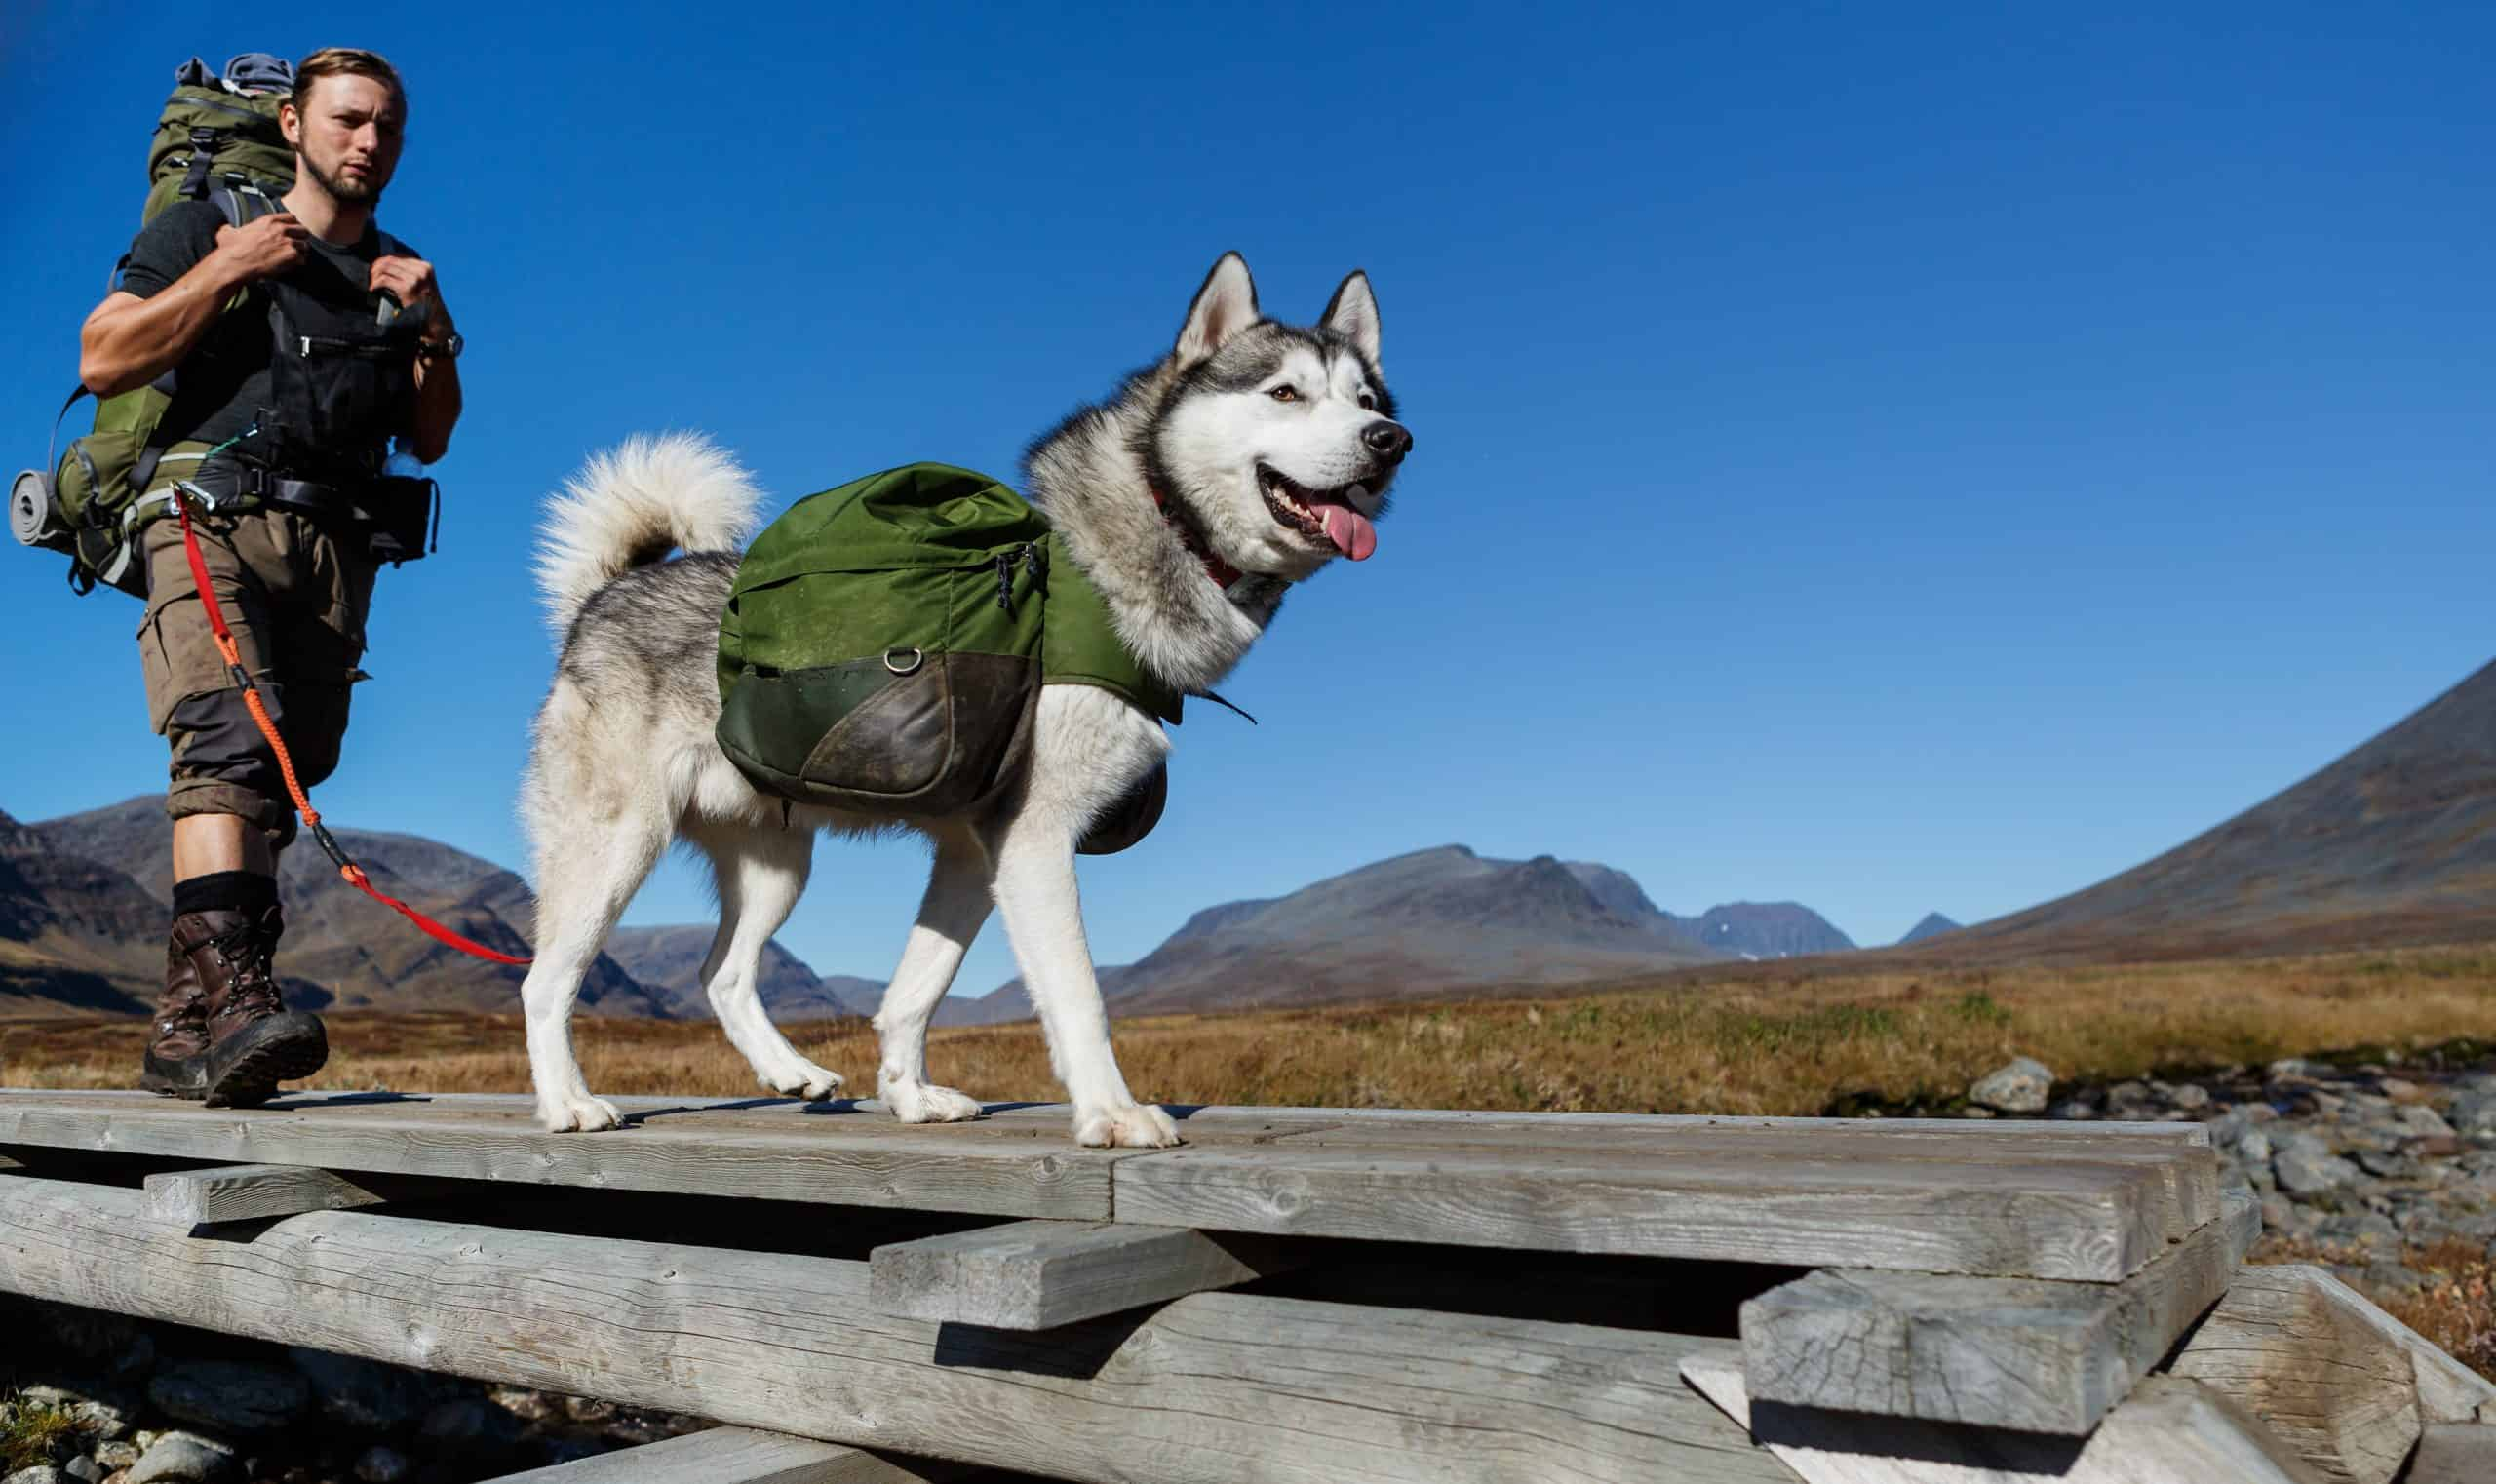 Man trekking with dog wearing a backpack.